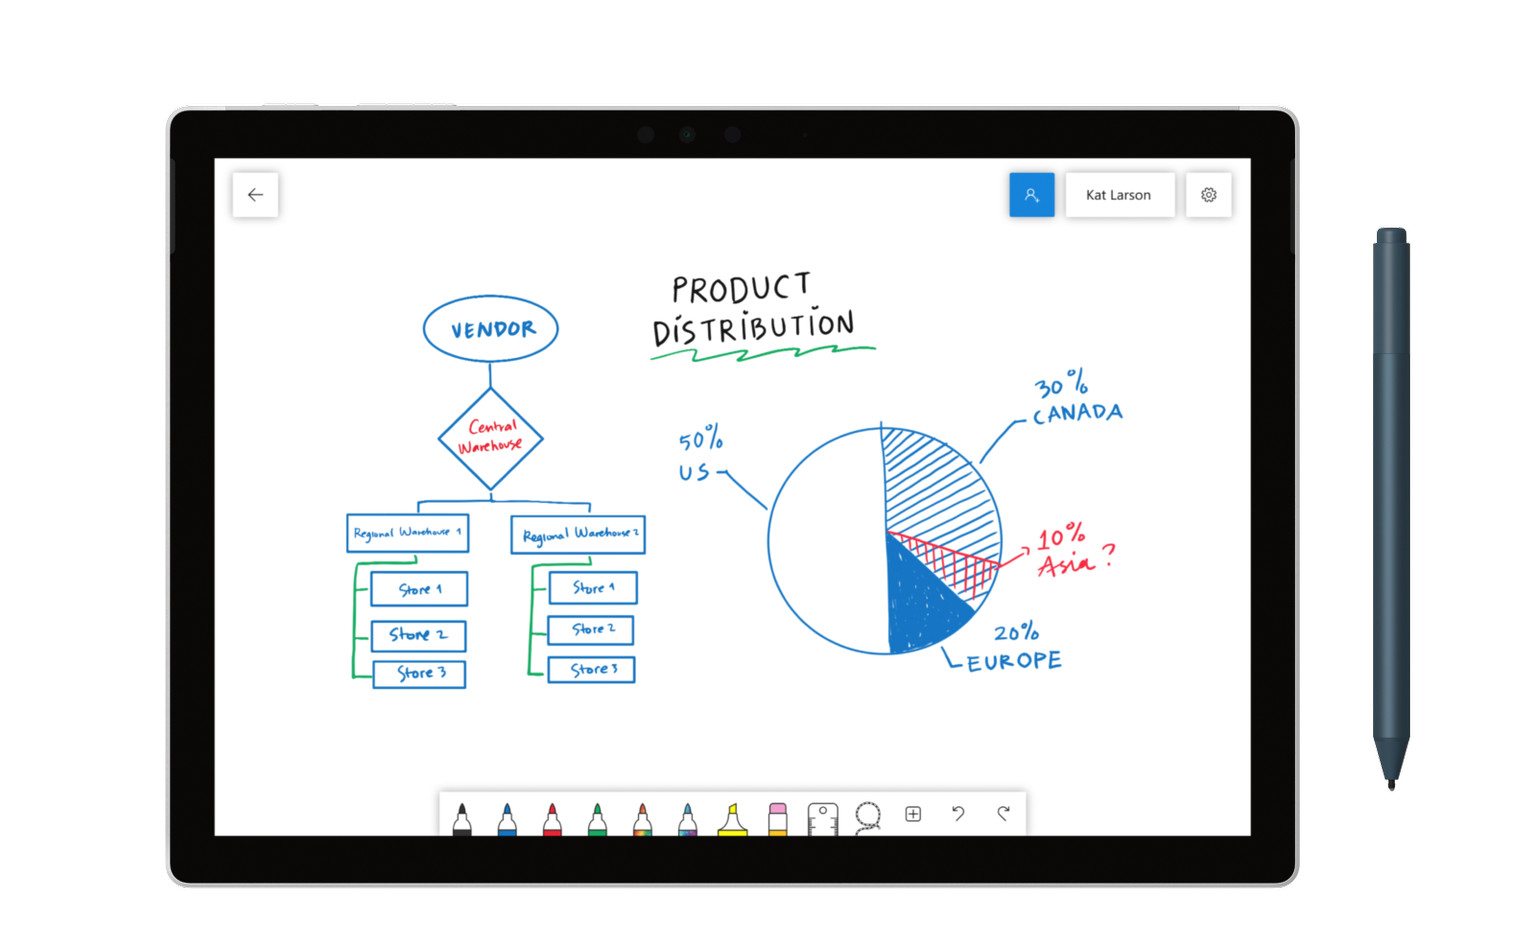 Microsoft just turned your conference-room whiteboard into an app